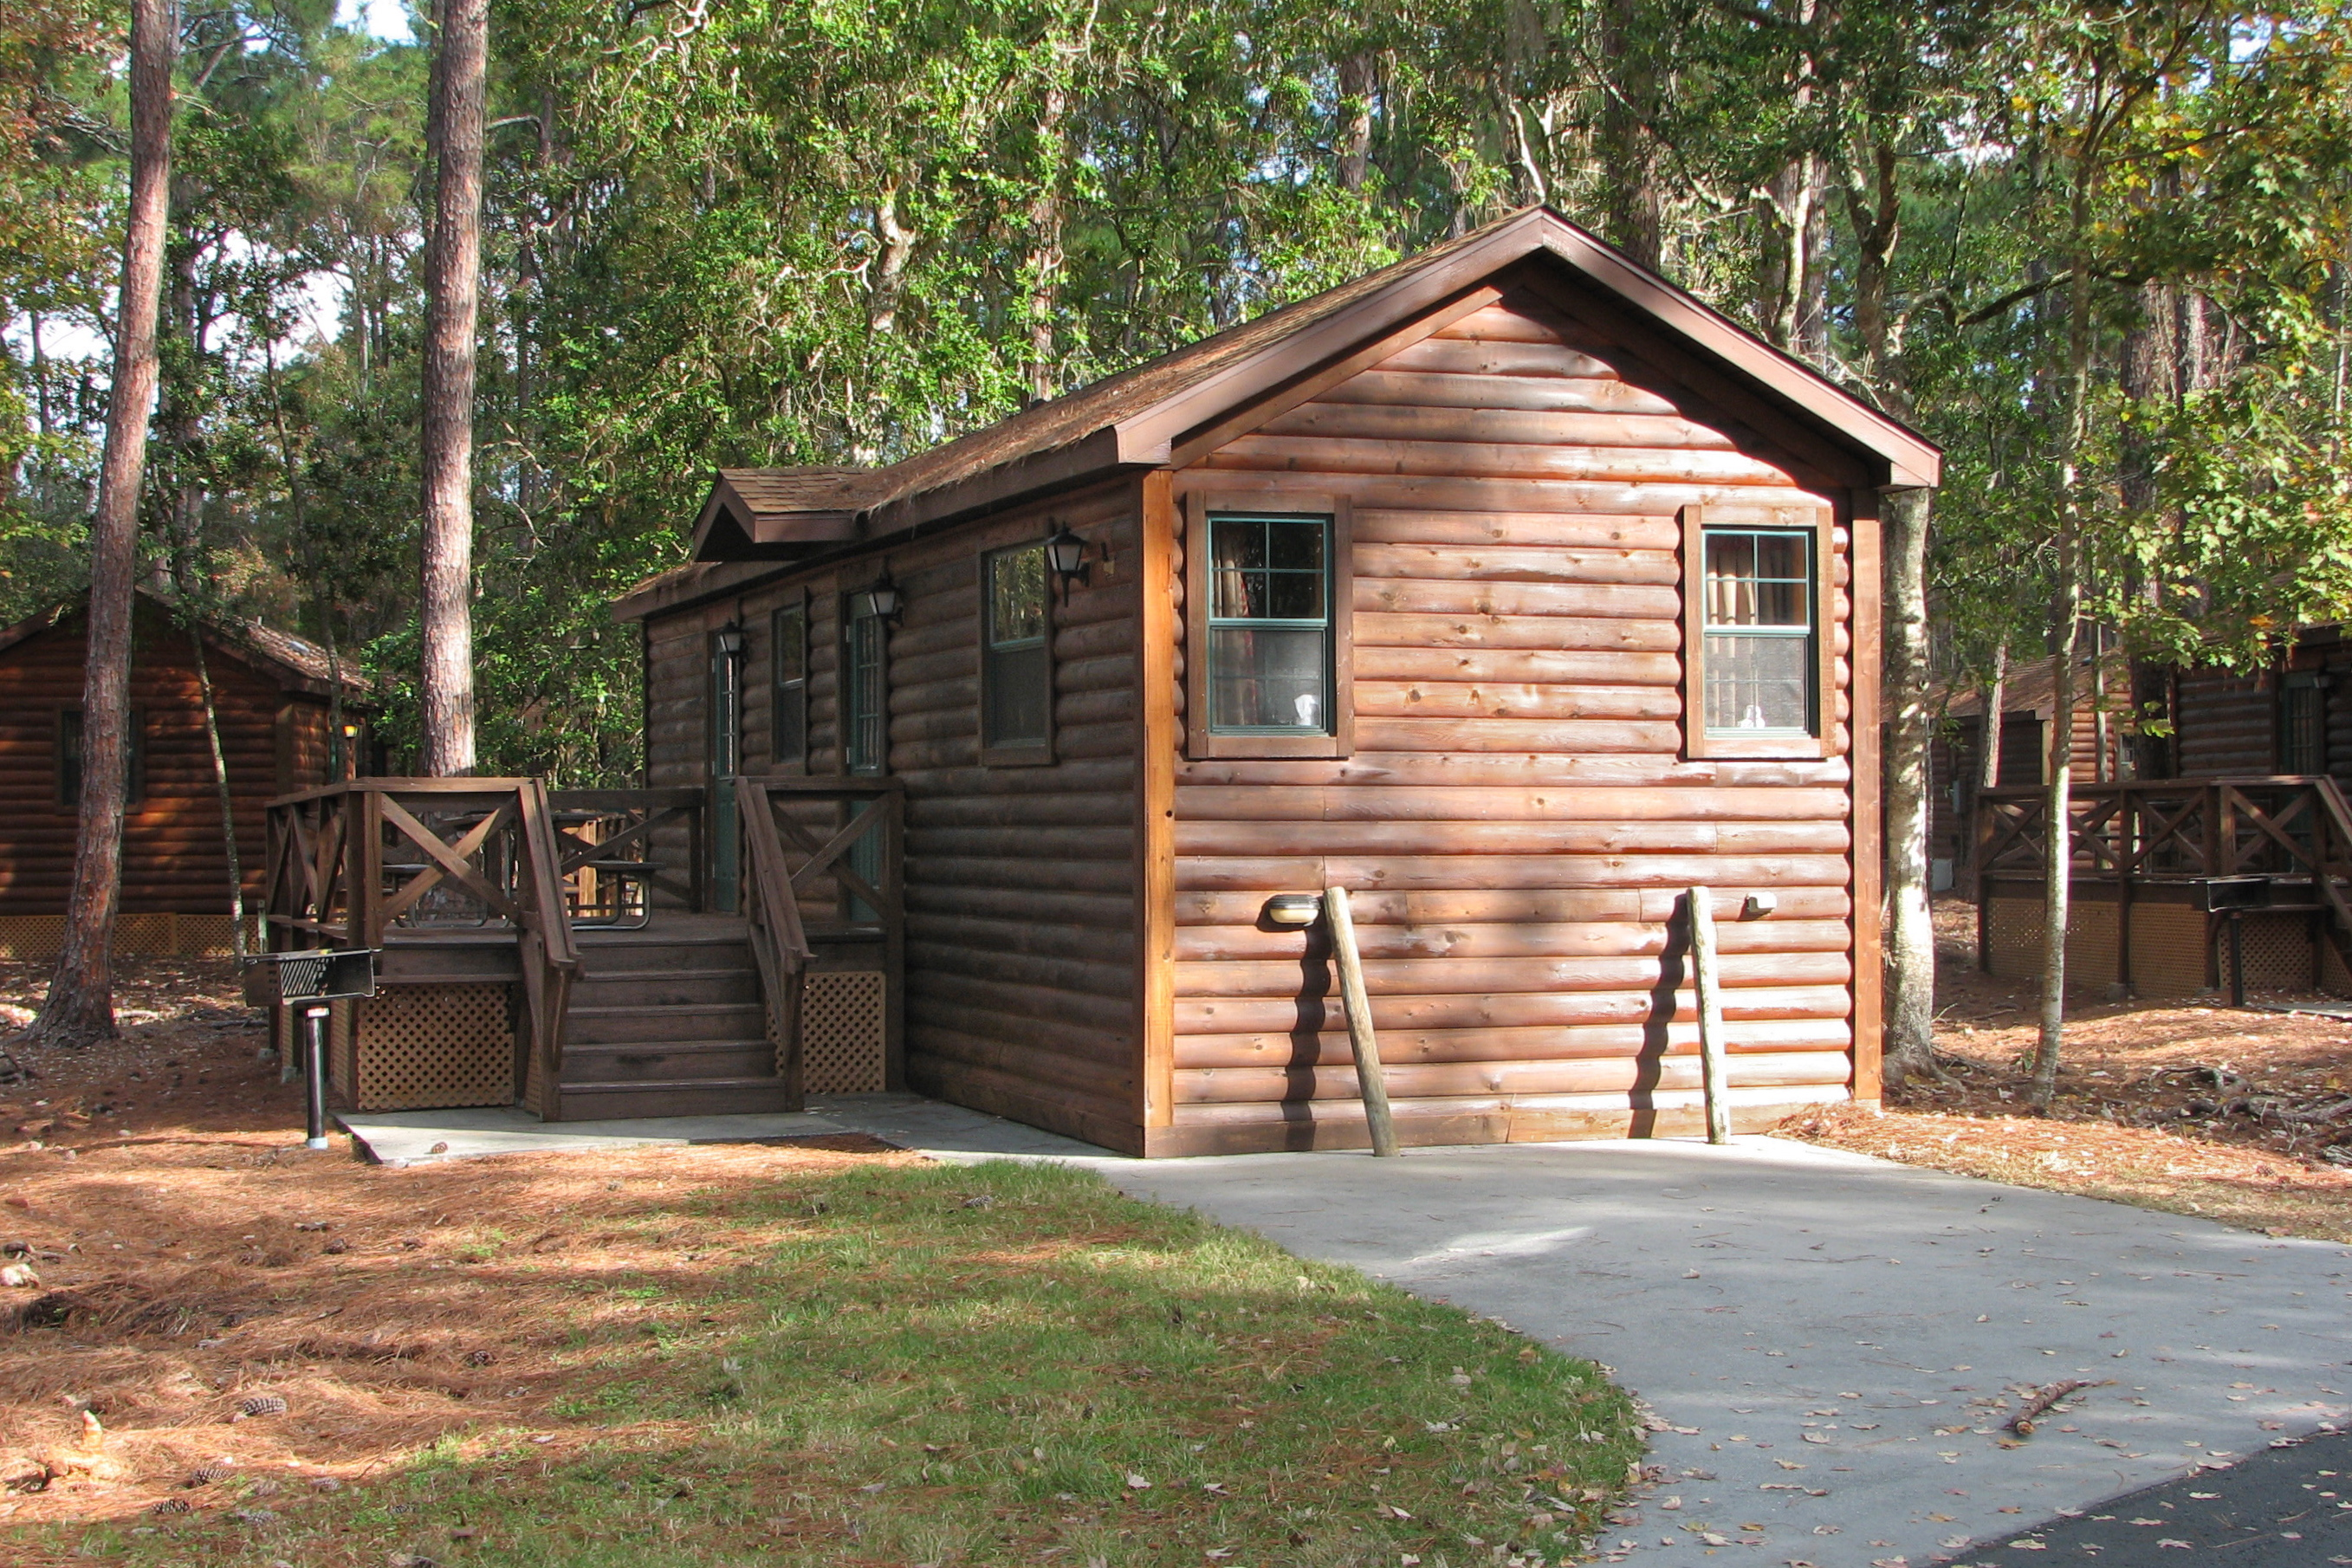 File:Fort Wilderness Cabin